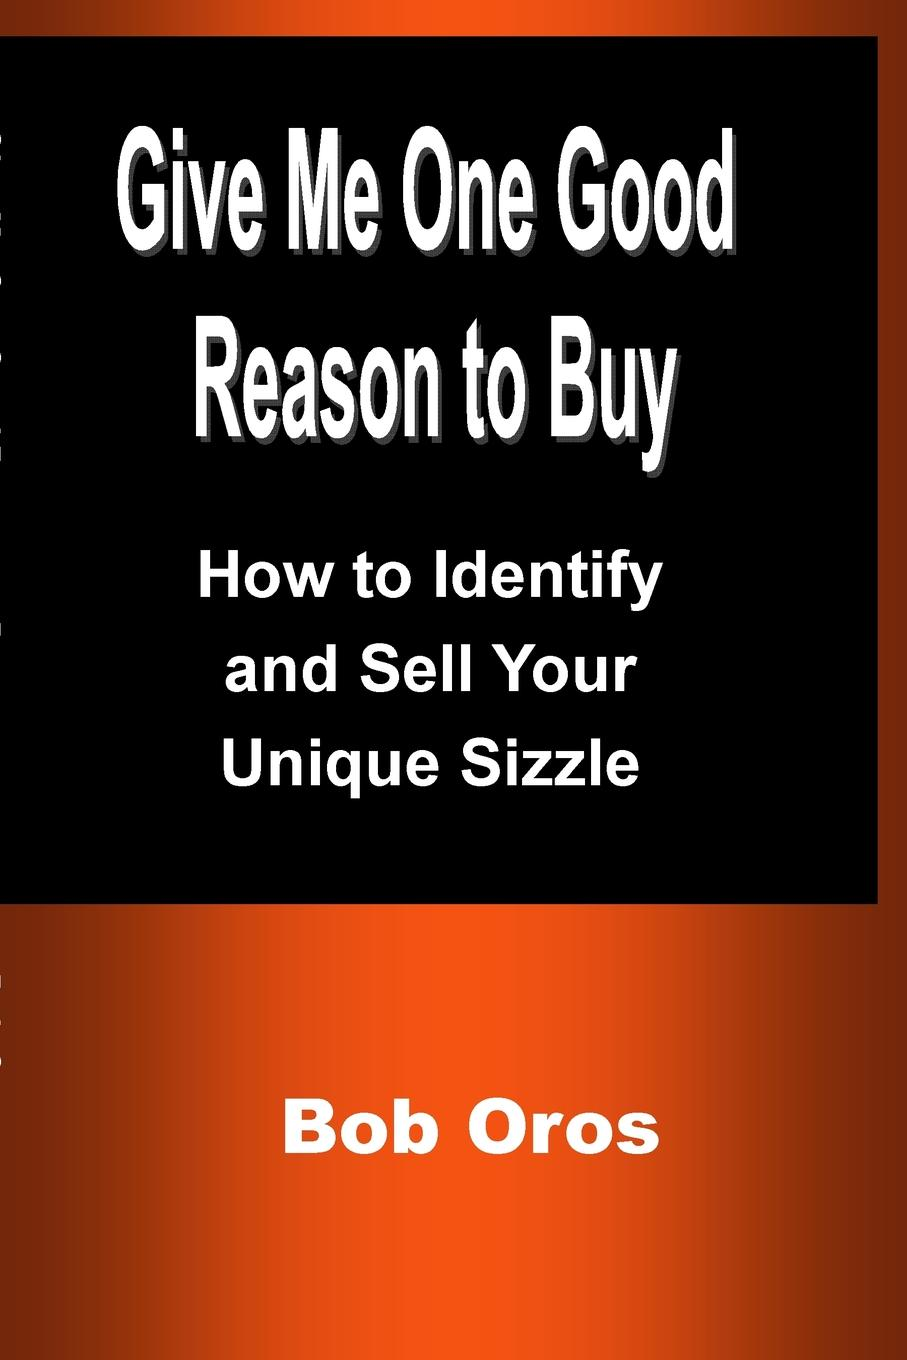 Bob Oros Give Me One Good Reason to Buy. How to Identify and Sell Your Unique Sizzle интенсивно увлажняющий бальзам карандаш для губ holika holika good cera super ceramide lip oil stick